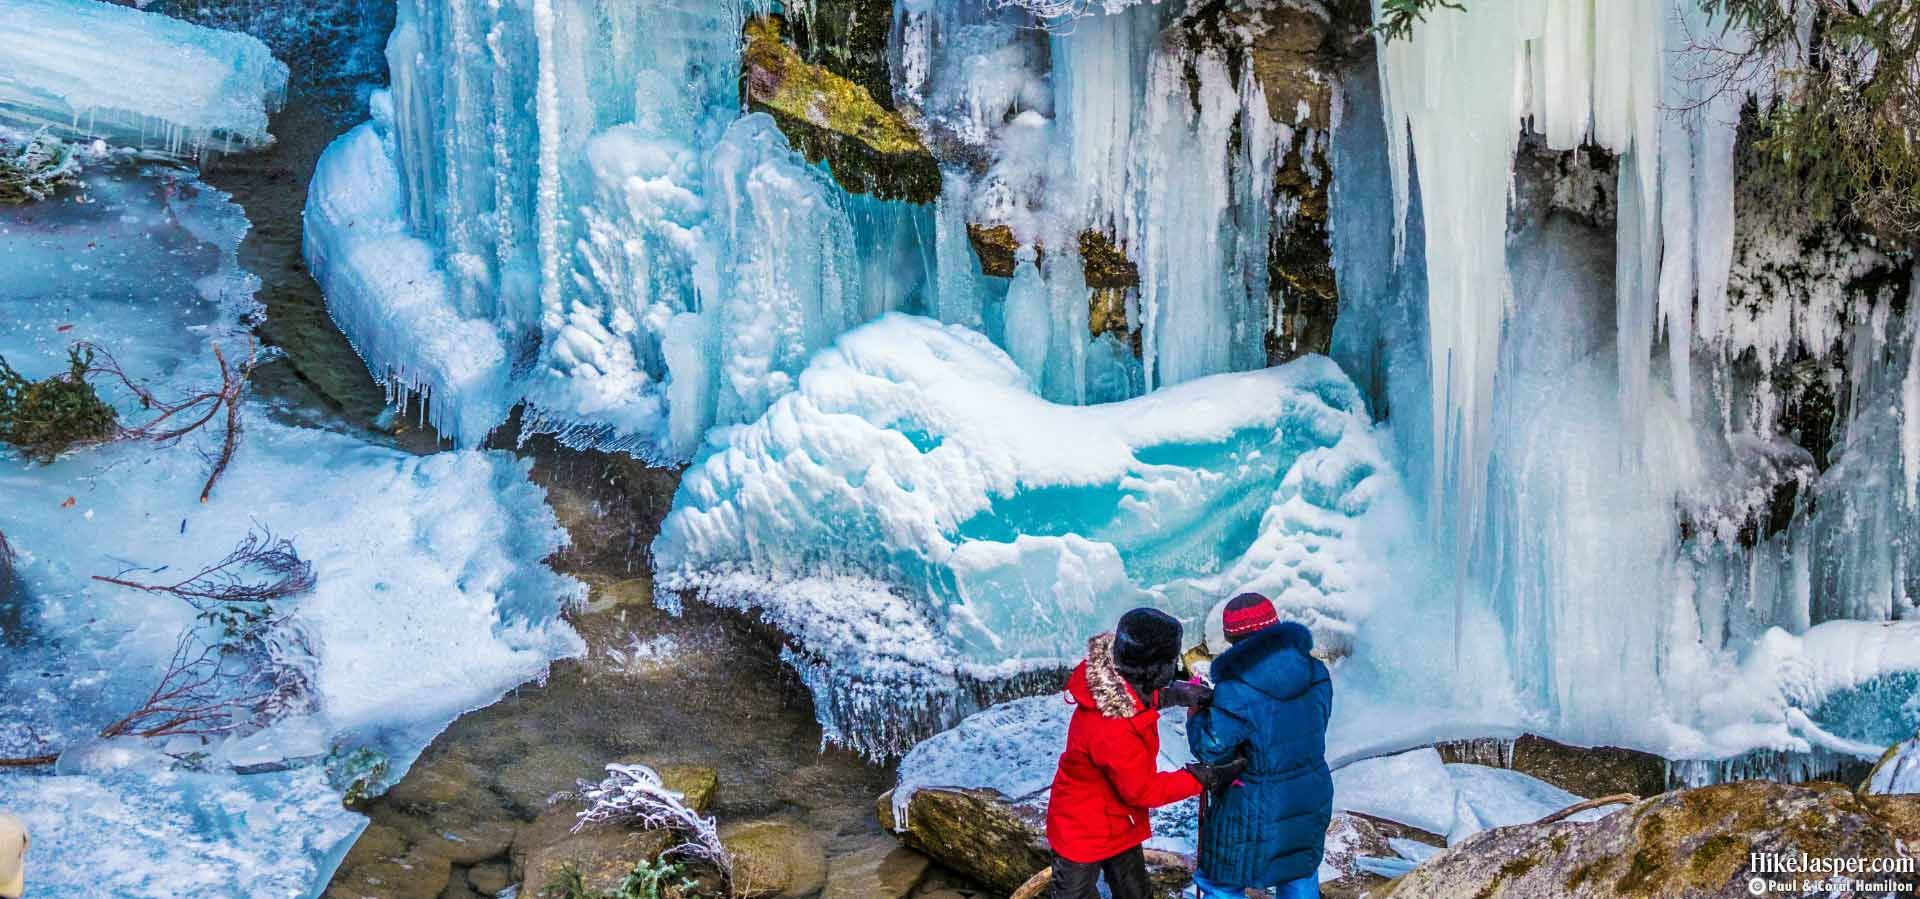 Hike Maligne Canyon Ice Walk 2020